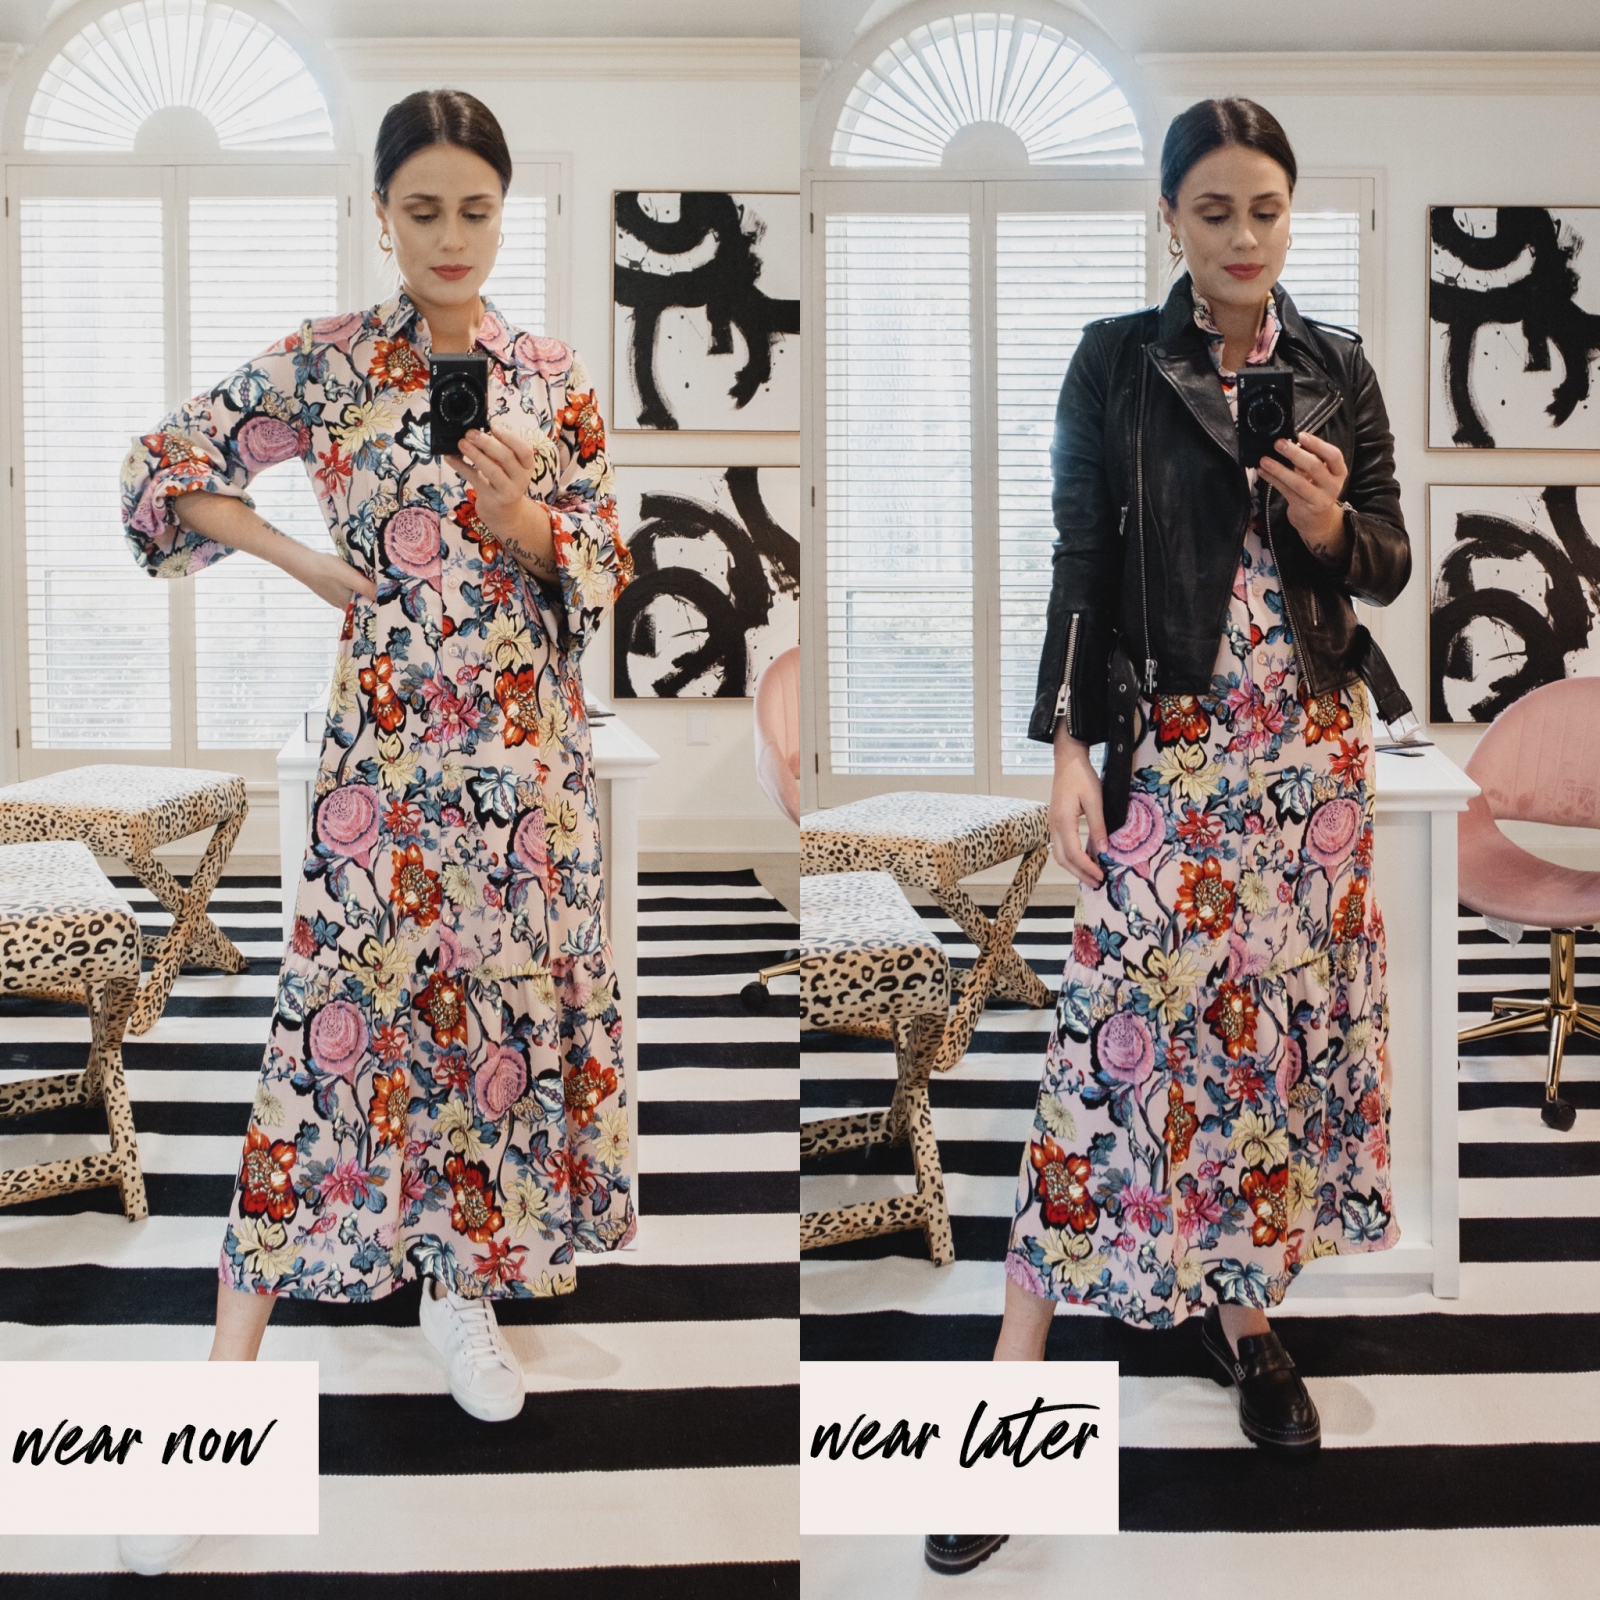 Elly Brown shows how to wear a spring floral dress in the fall with a leather jacket and platform loafers